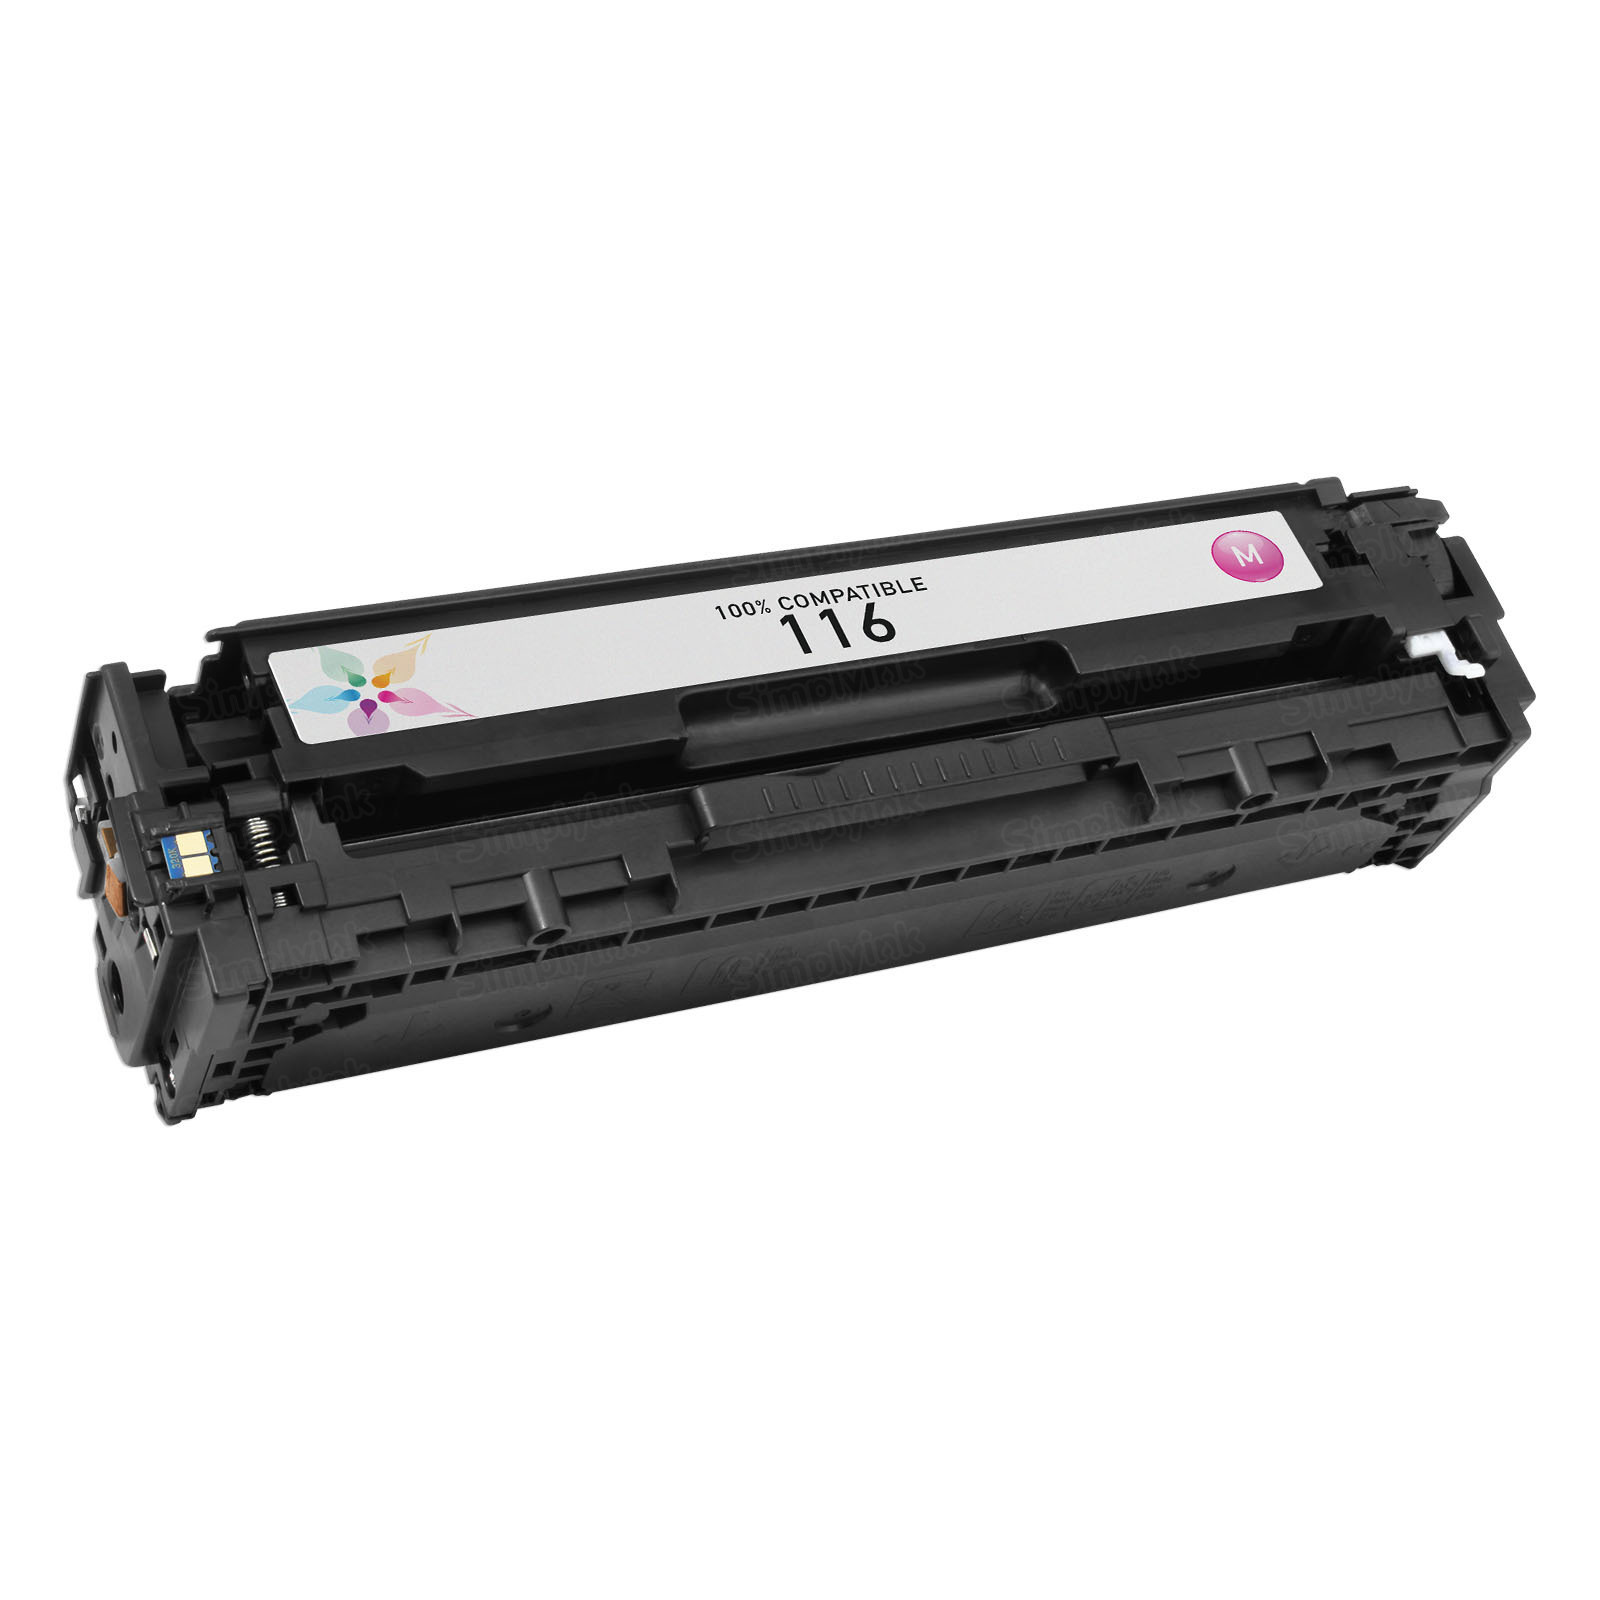 Compatible 116 Magenta Toner for Canon